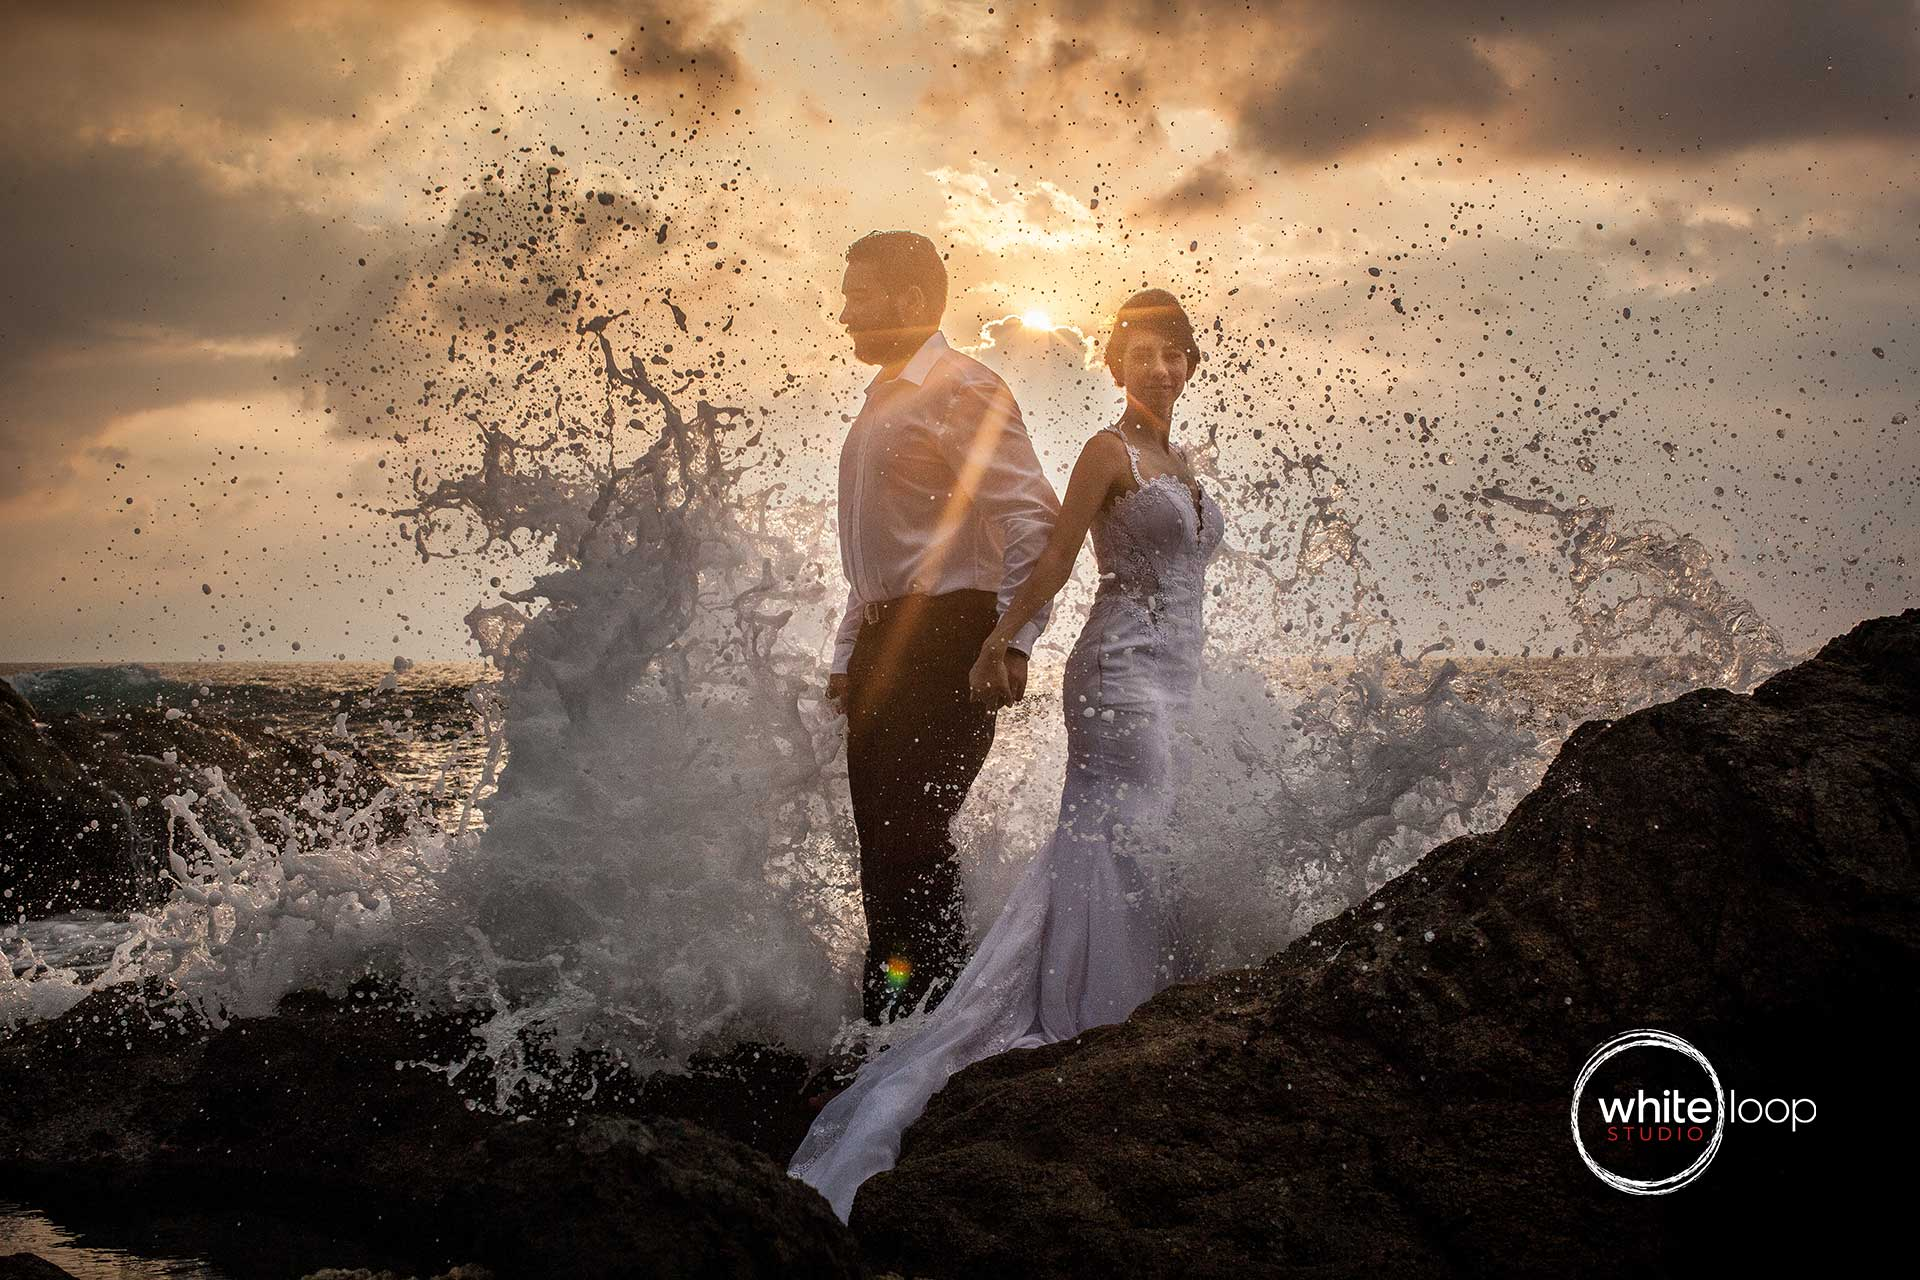 The bride and groom holding hands at the tip of a rock while an ocean wave knocks and splashes.